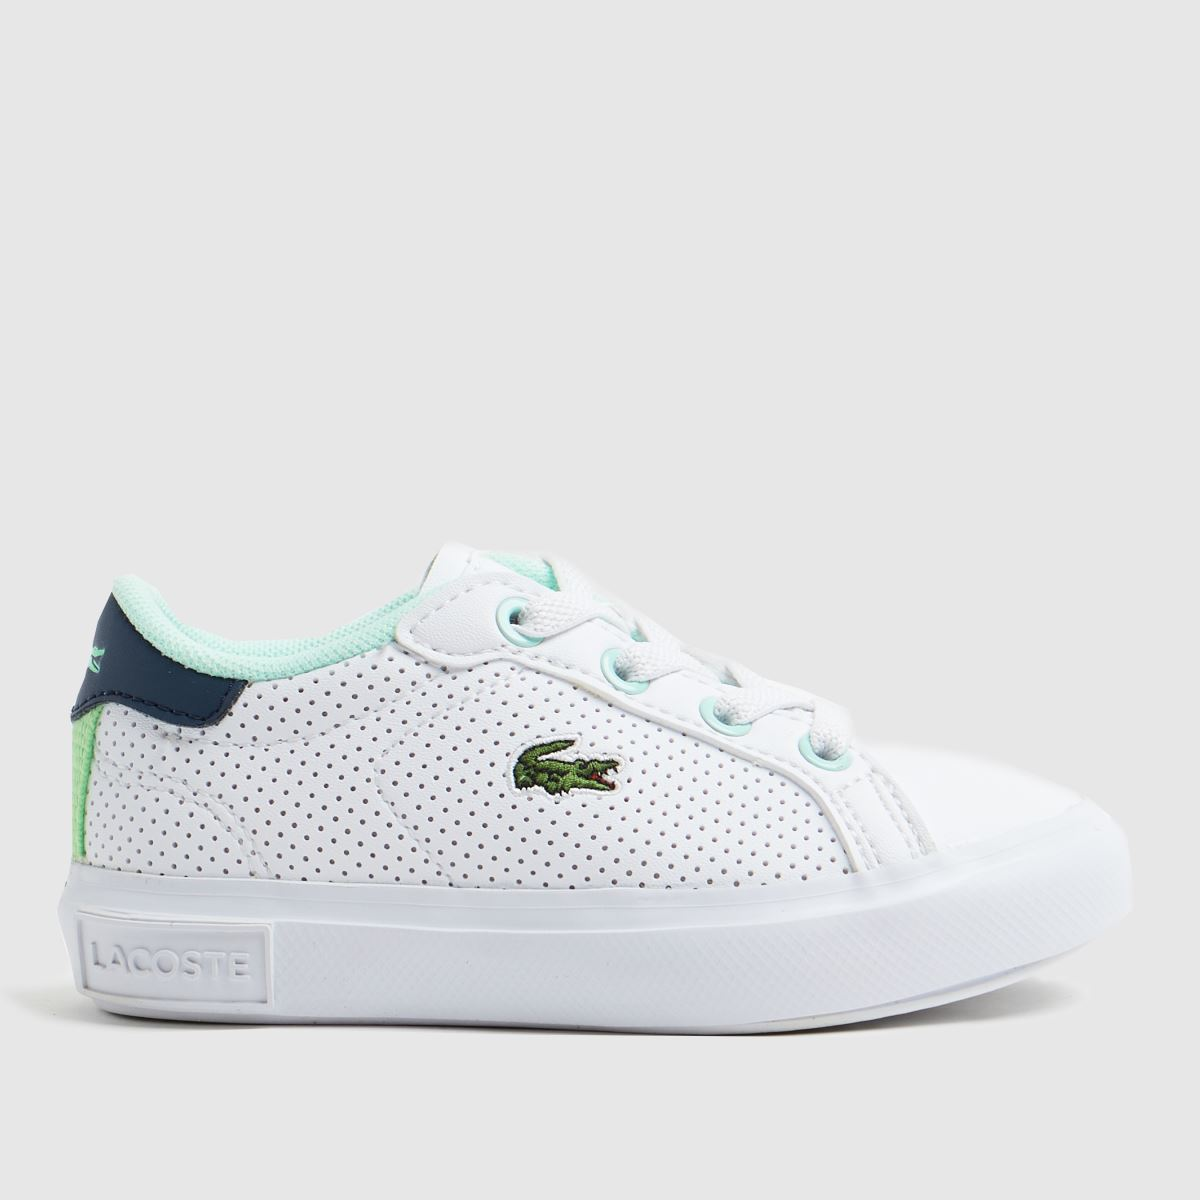 Lacoste White & Navy Powercourt Trainers Toddler